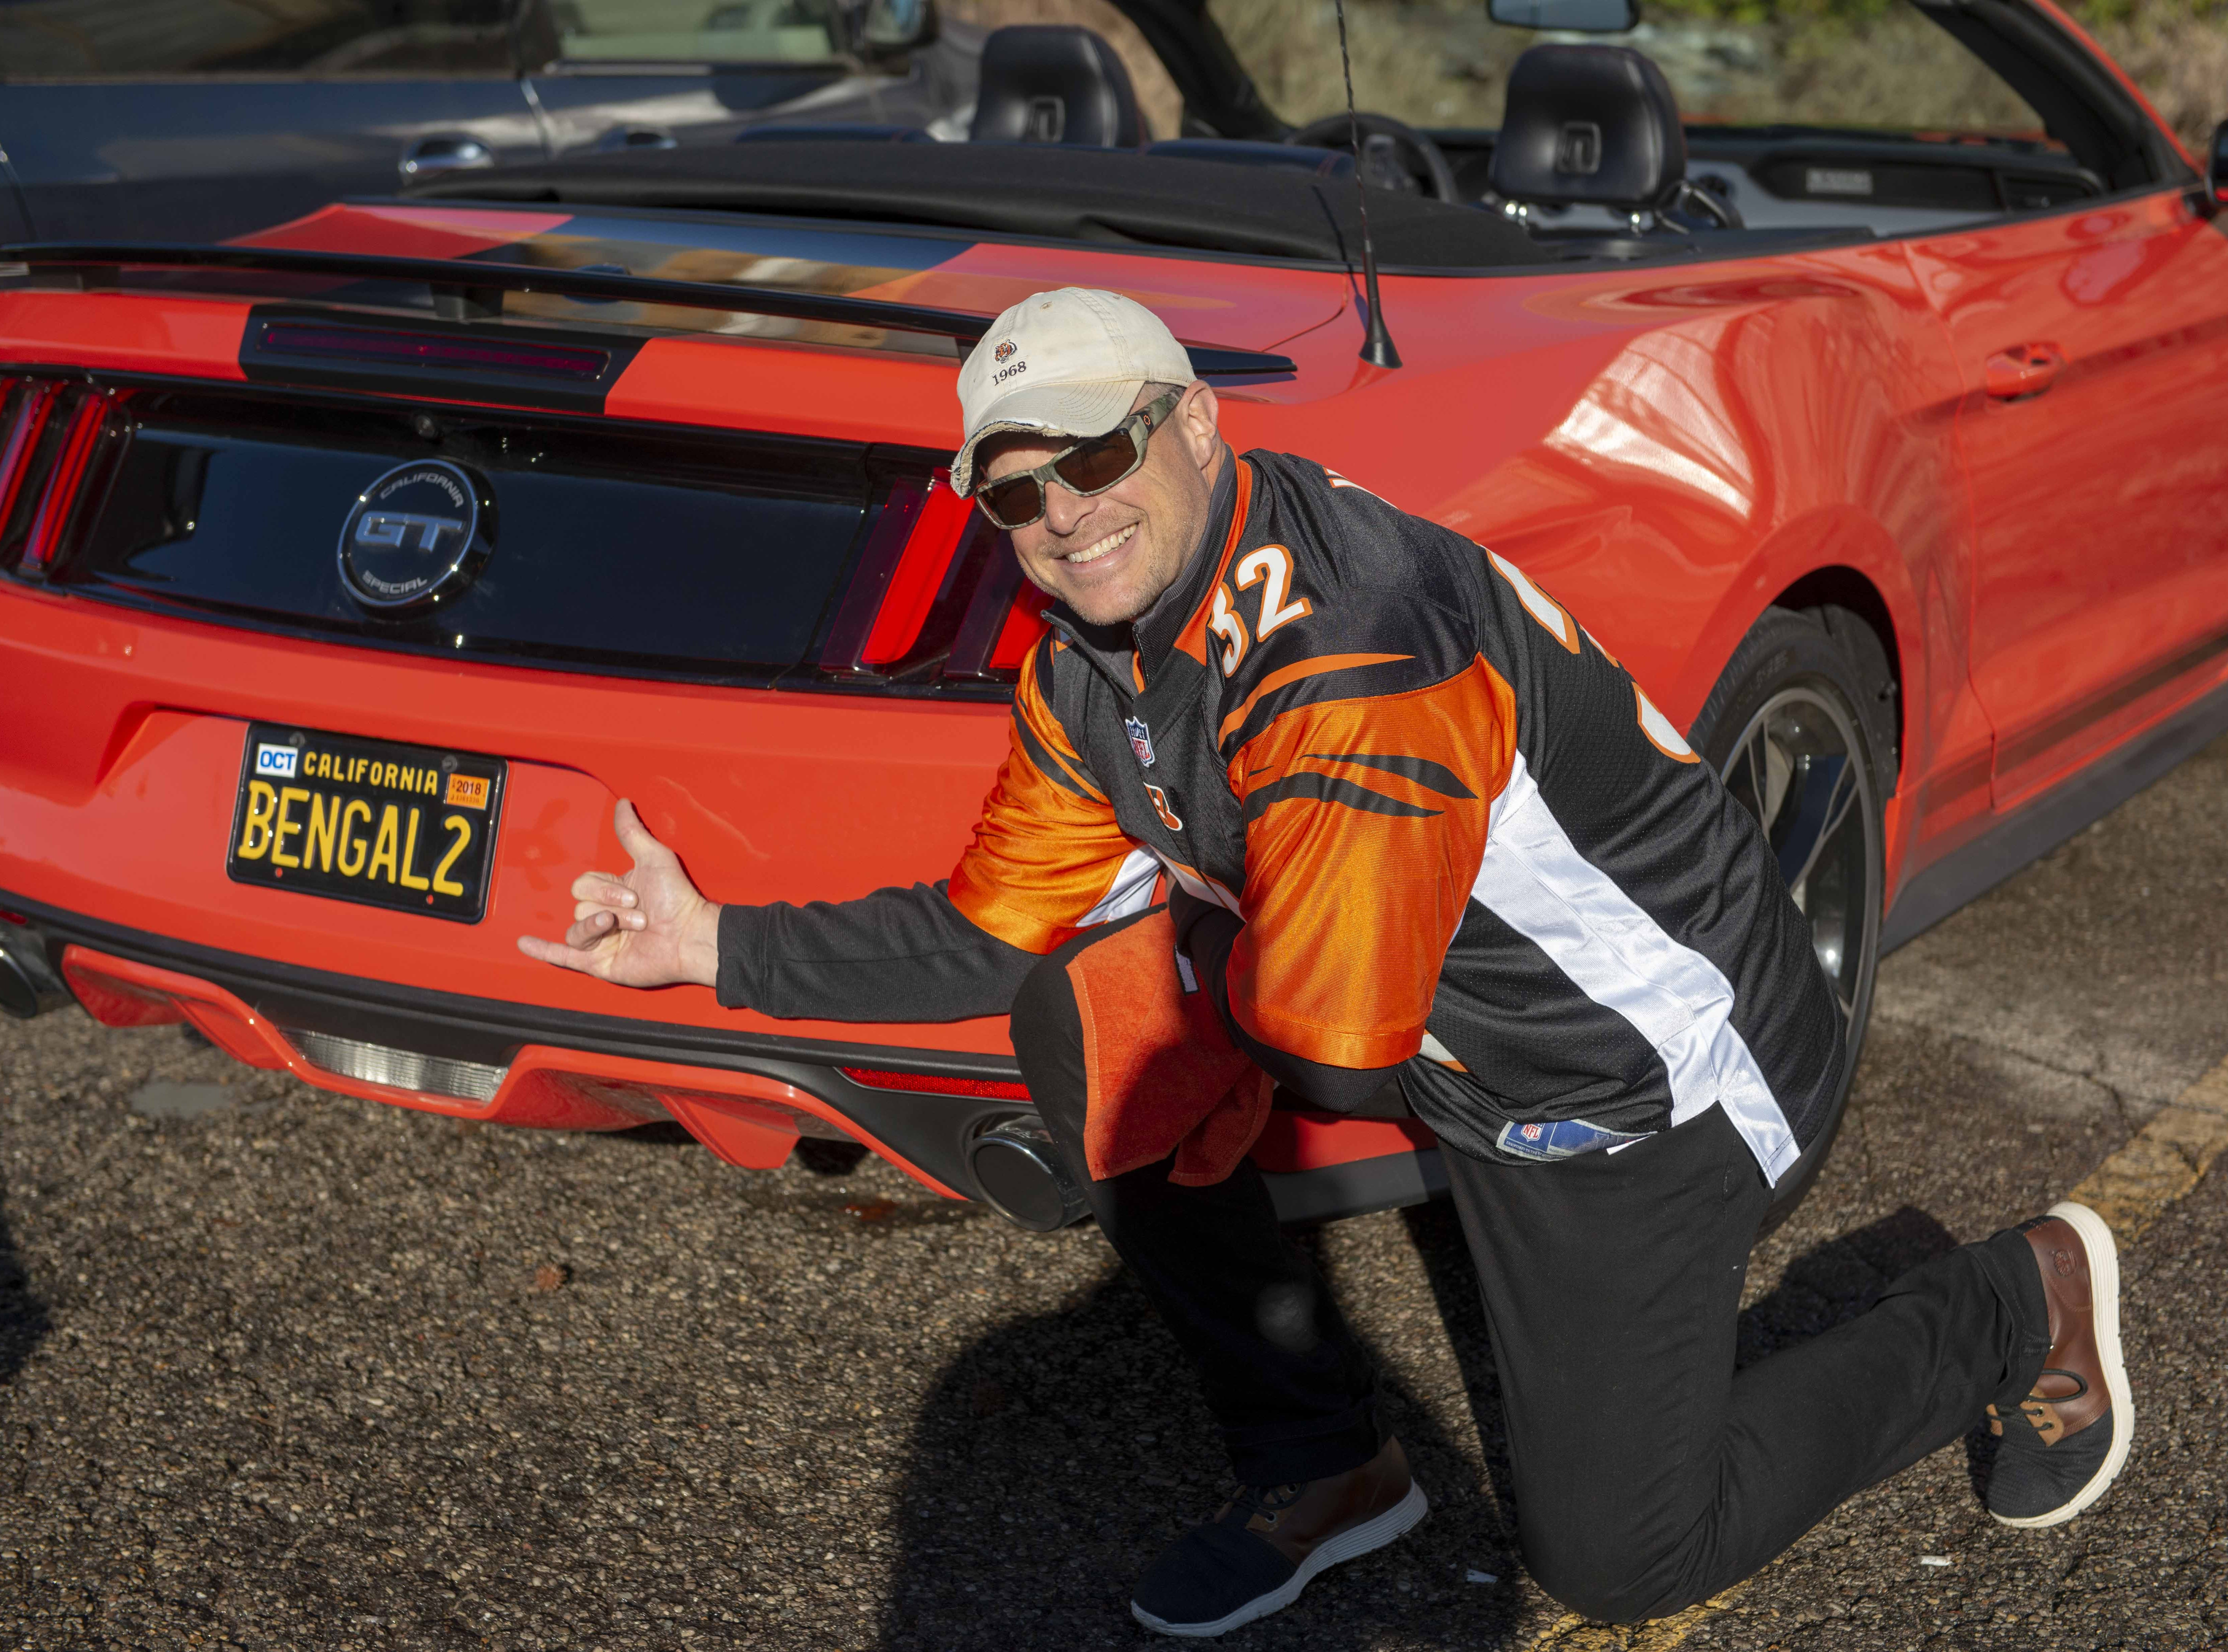 Cincinnati Bengals fans showed up for tailgating parties as the Cincinnati Bengals hosted the Denver Broncos at Paul Brown Stadium Sunday, December 2, 2018. Brian HIll of Union, Kentucky, with his 2016 Mustang.